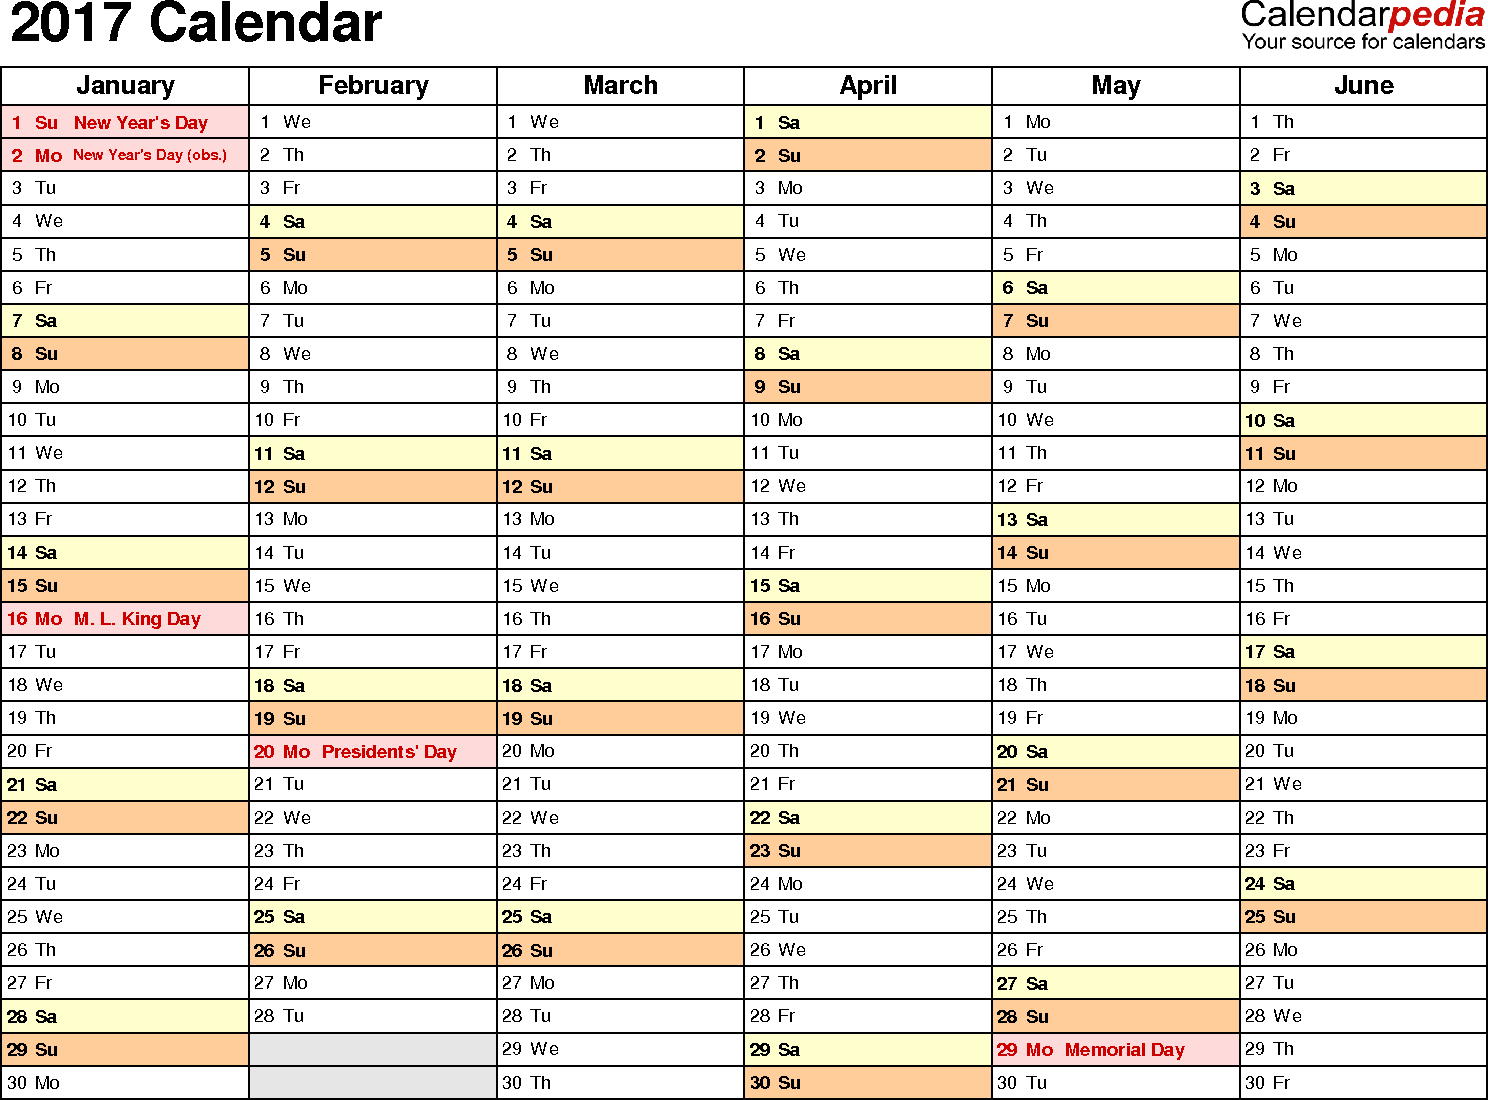 Ediblewildsus  Inspiring  Calendar  Download  Free Printable Excel Templates Xls With Fascinating Template   Calendar For Excel Months Horizontally  Pages Landscape Orientation With Comely Excel  Open In New Window Also Excel Table Styles In Addition Vcf To Excel And Name Range In Excel As Well As Excel Join Cells Additionally How To Print Excel With Comments From Calendarpediacom With Ediblewildsus  Fascinating  Calendar  Download  Free Printable Excel Templates Xls With Comely Template   Calendar For Excel Months Horizontally  Pages Landscape Orientation And Inspiring Excel  Open In New Window Also Excel Table Styles In Addition Vcf To Excel From Calendarpediacom